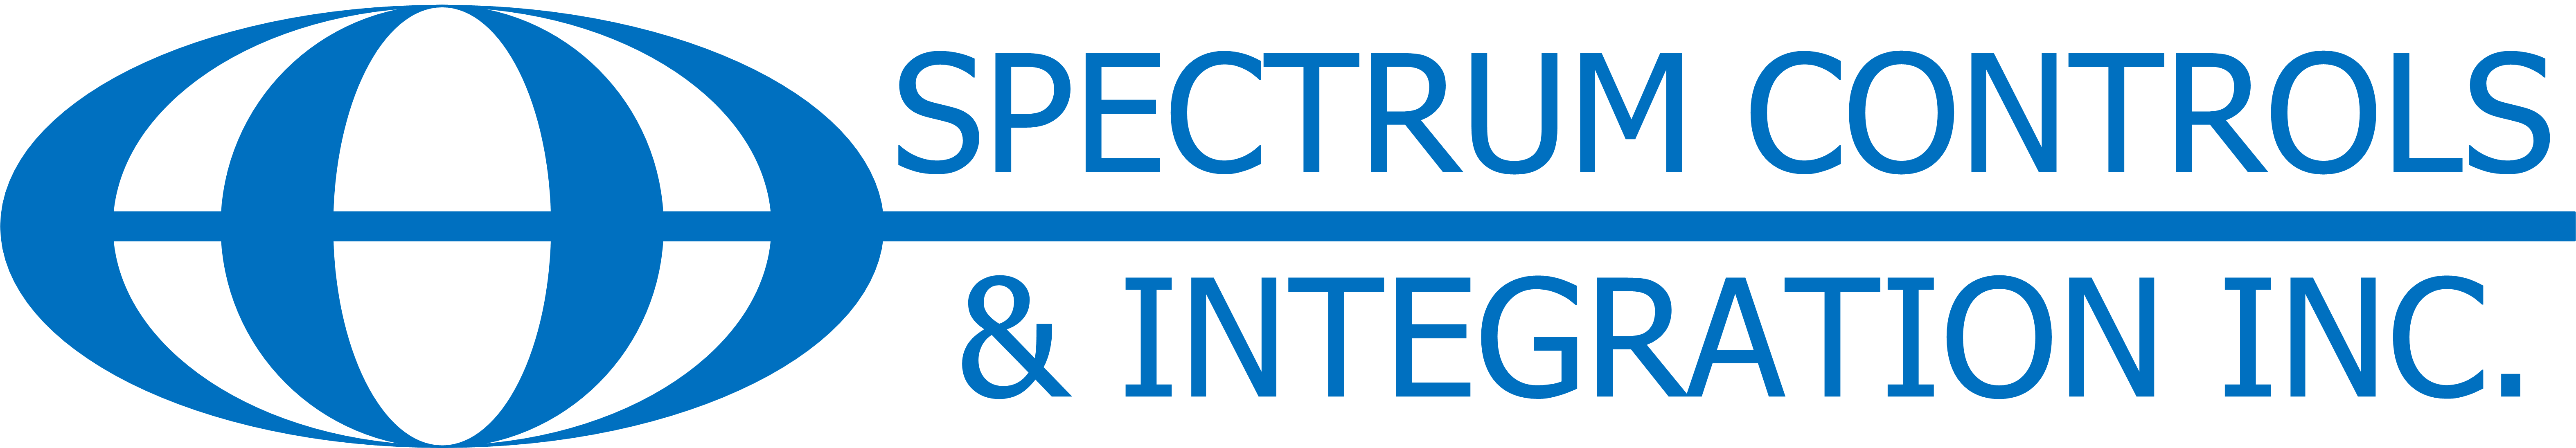 Spectrum Controls & Integration